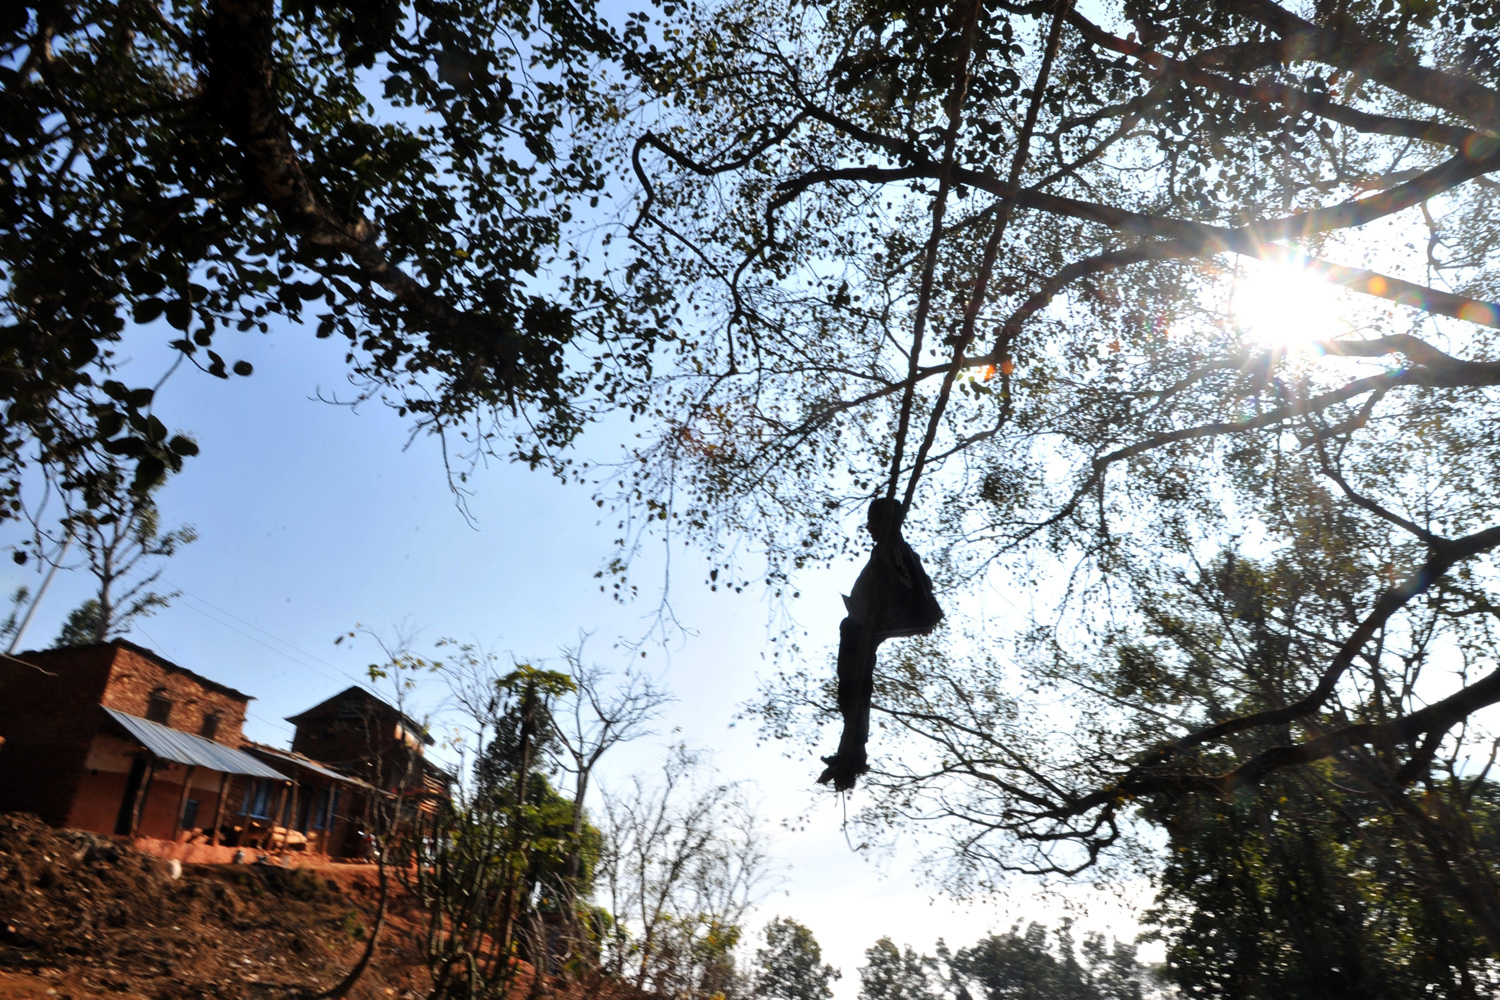 January 15, 2012. A young Nepalese plays on a swing during the Hindu festival of Maghesangranti at Taraka village, Nuwakot district, some 80 kilometers from Kathmandu.